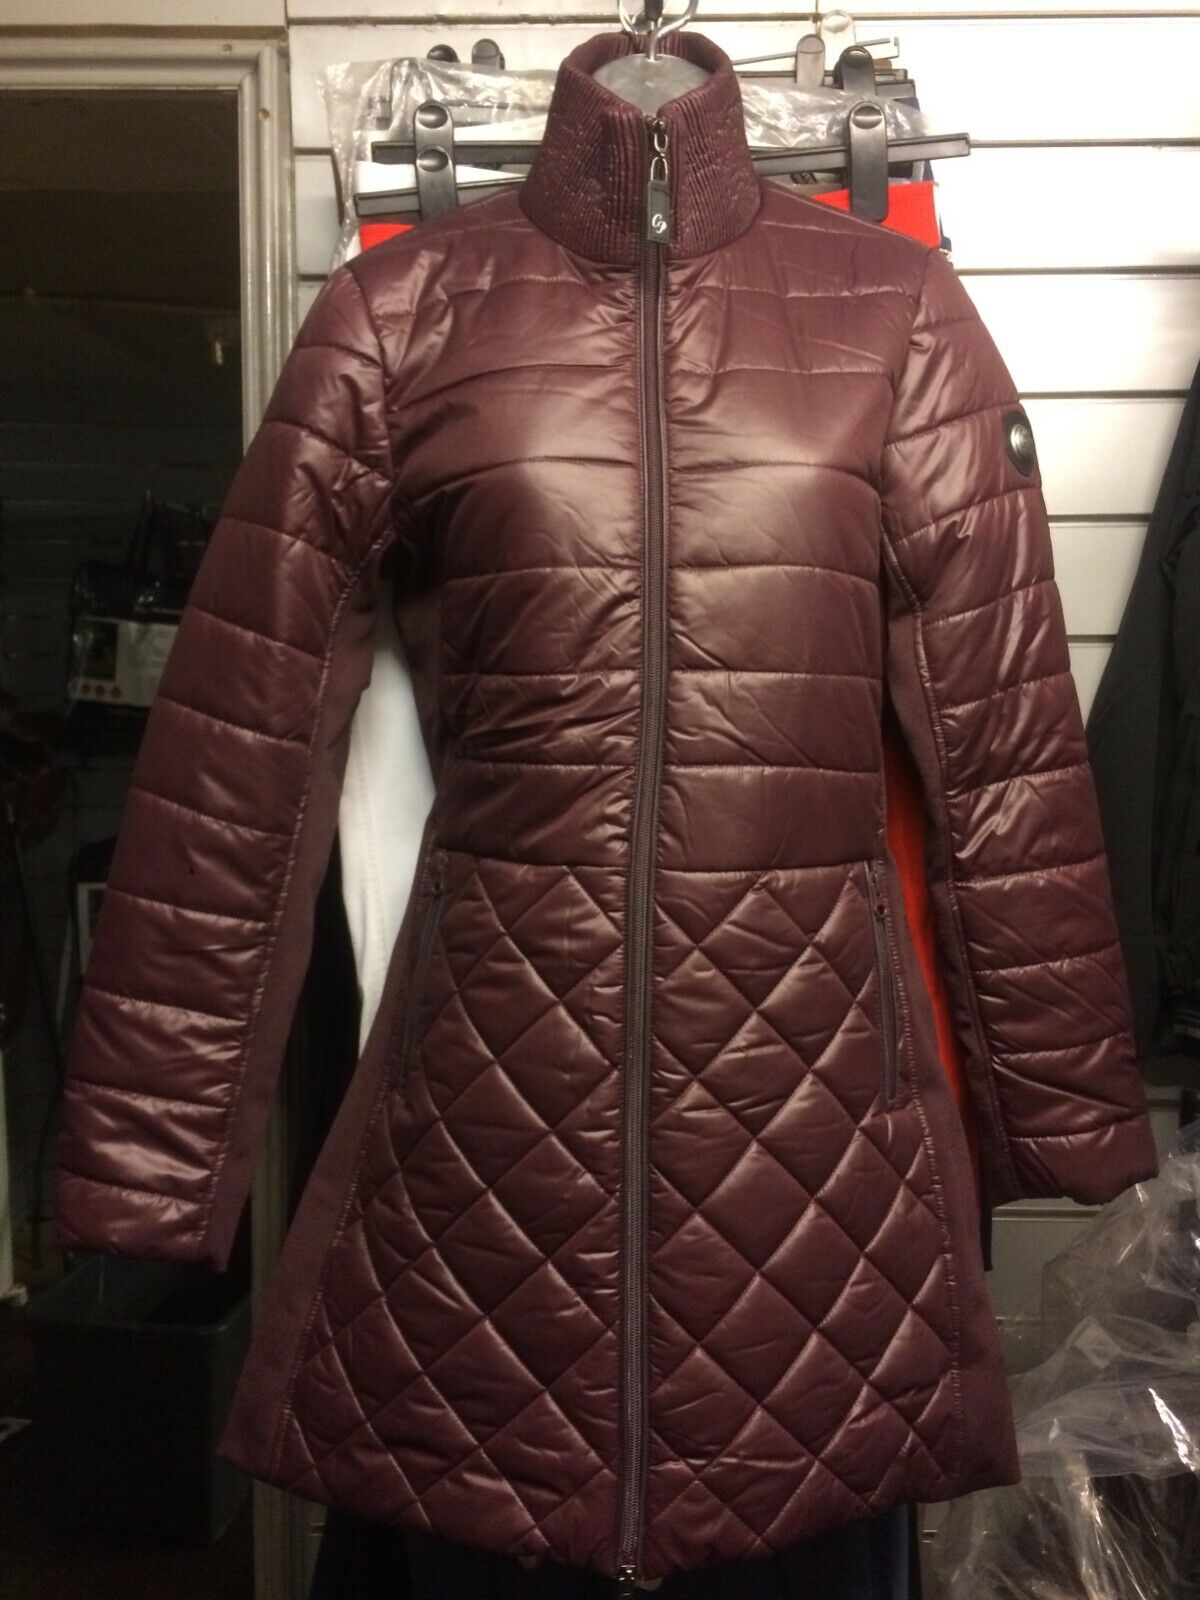 Riding coat with bag zip opening very stylish Größe small and medium